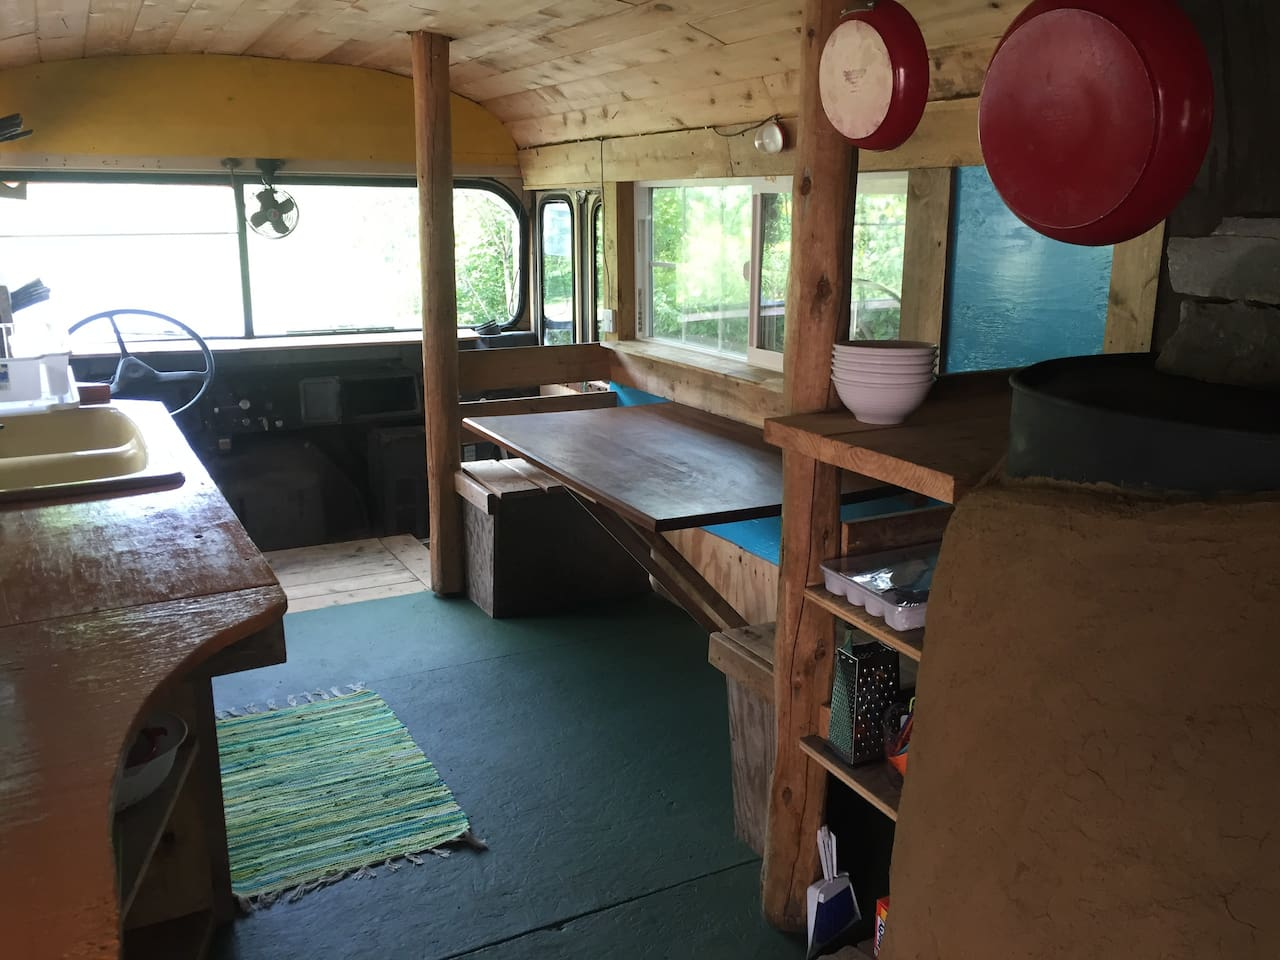 Indoor kitchen and seating